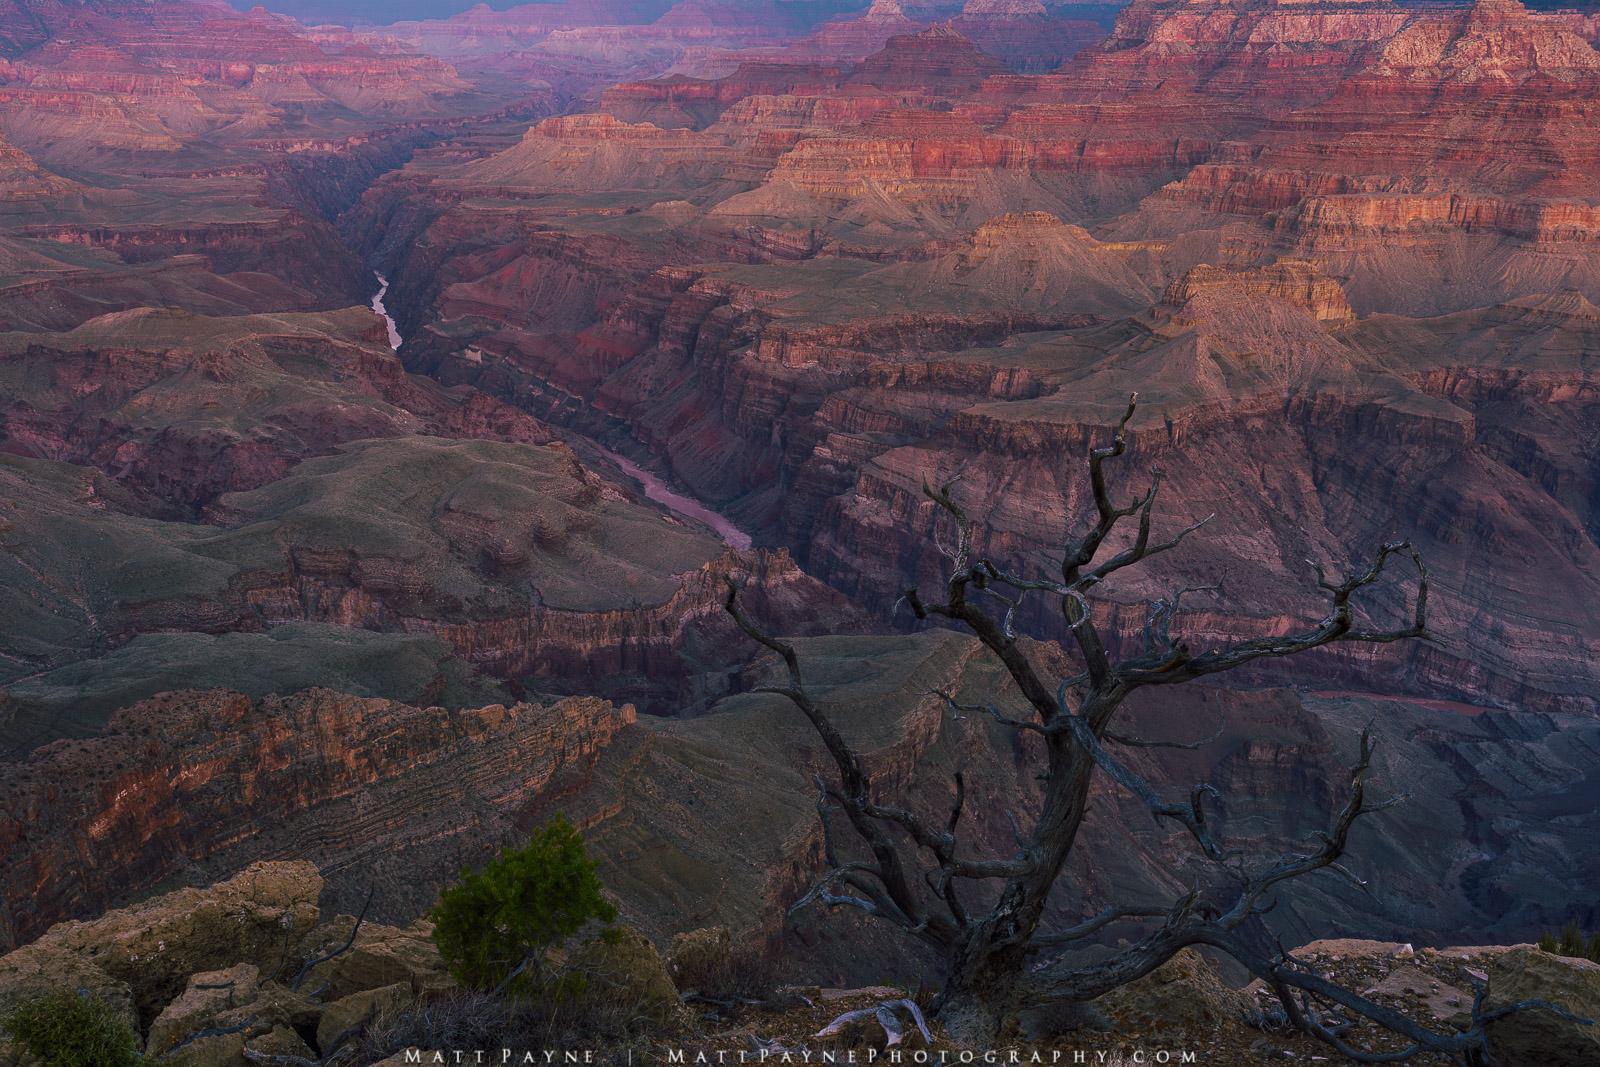 Arizona, Colorado River, Grand Canyon National Park, Grand Scenic, Grand Vista, Landscape, Sunrise, desert, tree, photo